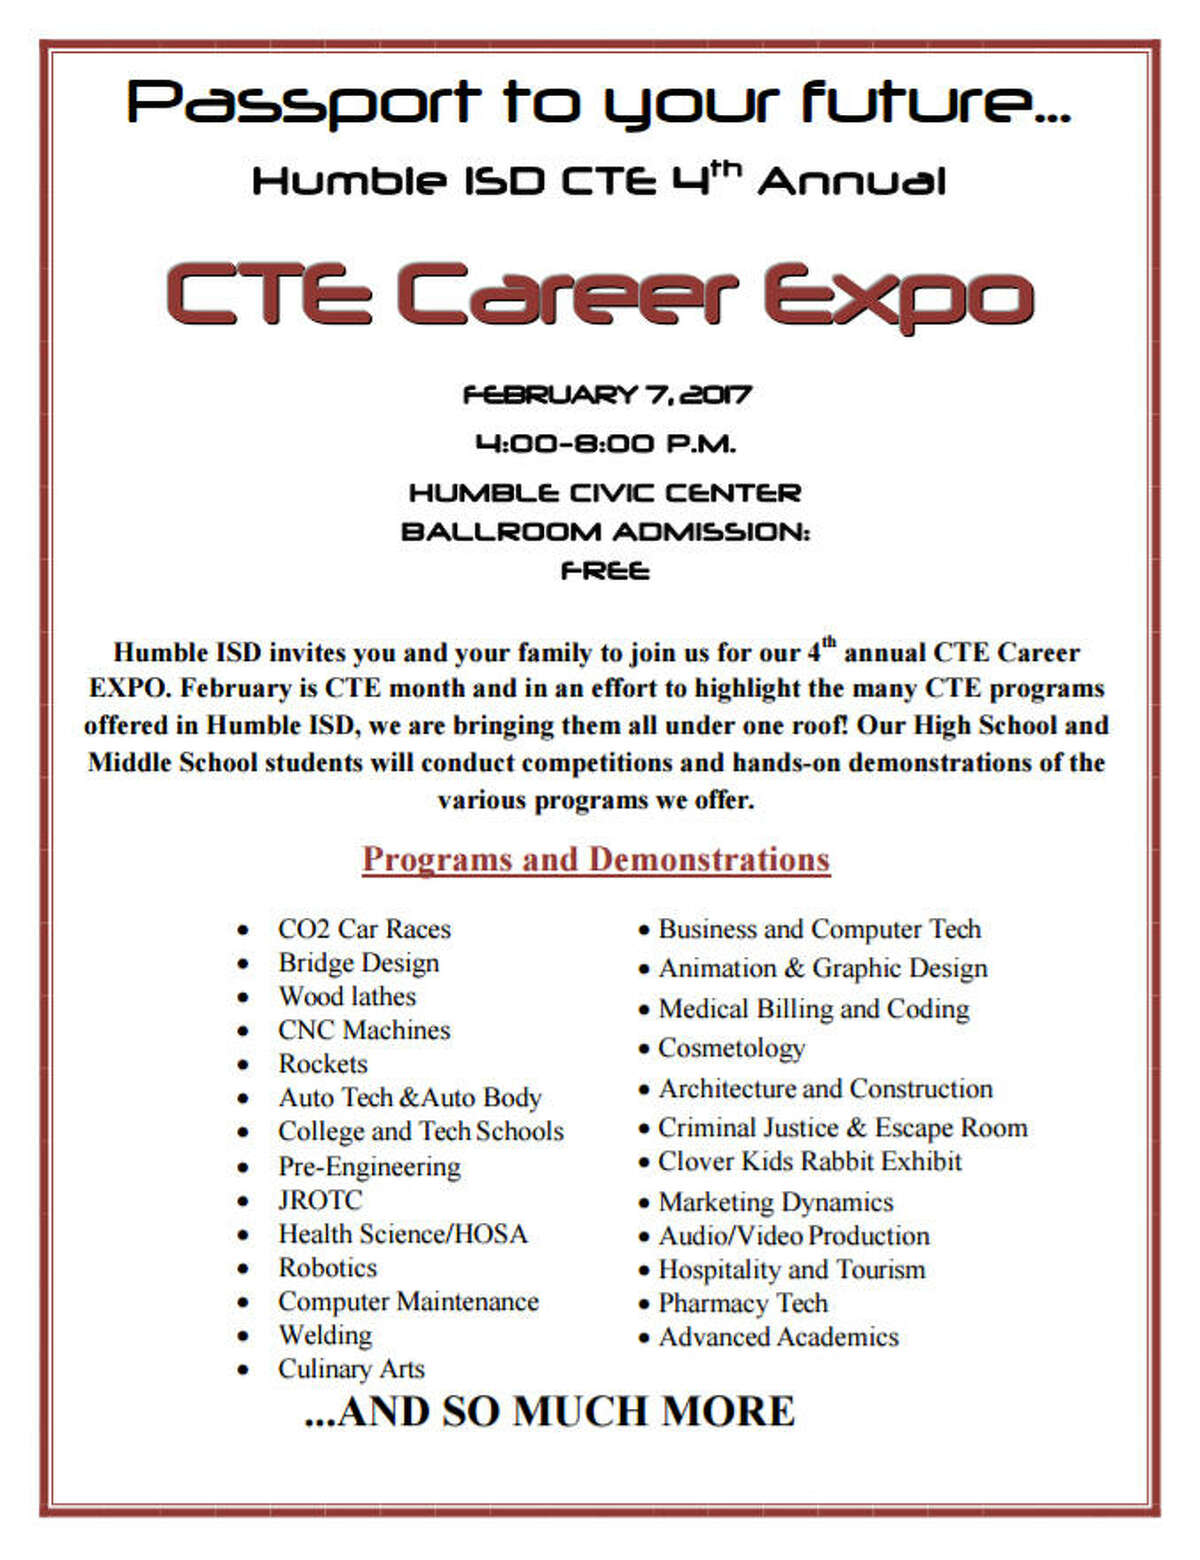 The community is invited to get a firsthand look at the various CTE program opportunities available in Humble ISD during the fourth annual CTE Career Expo at the Humble Civic Center Feb. 7 from 4 to 8 p.m.